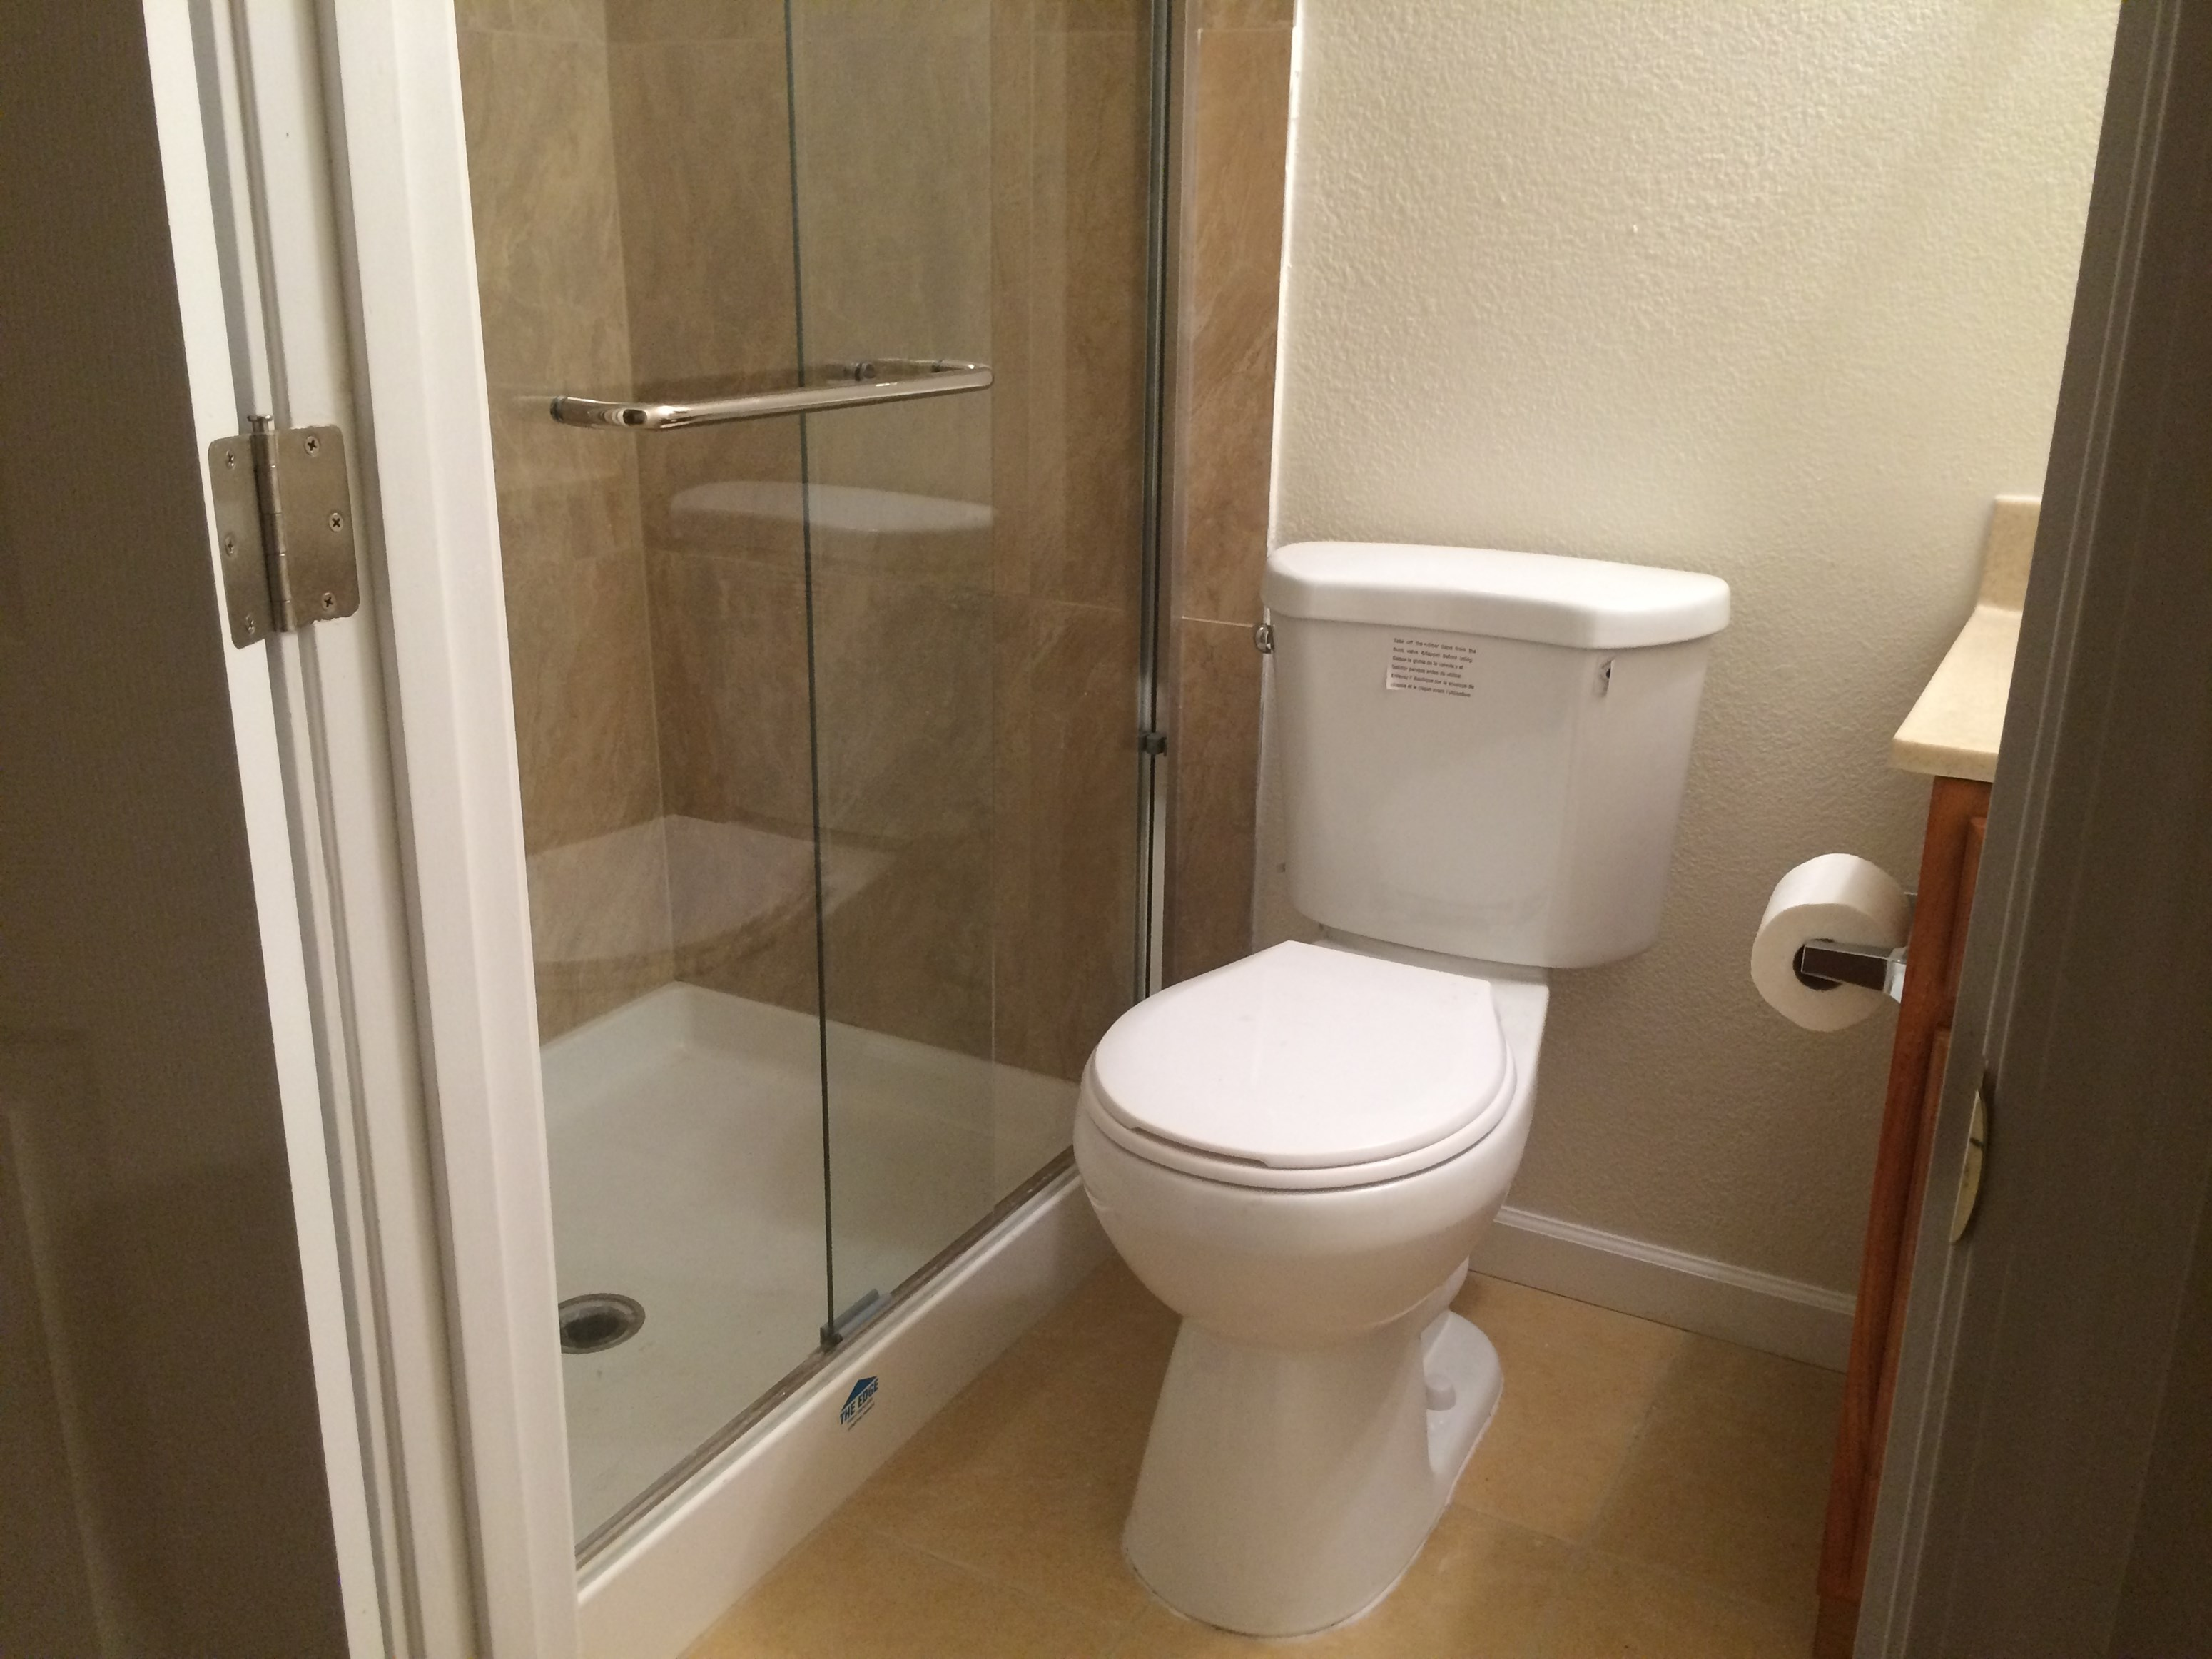 1 br apartment for sublease next to union city bart station